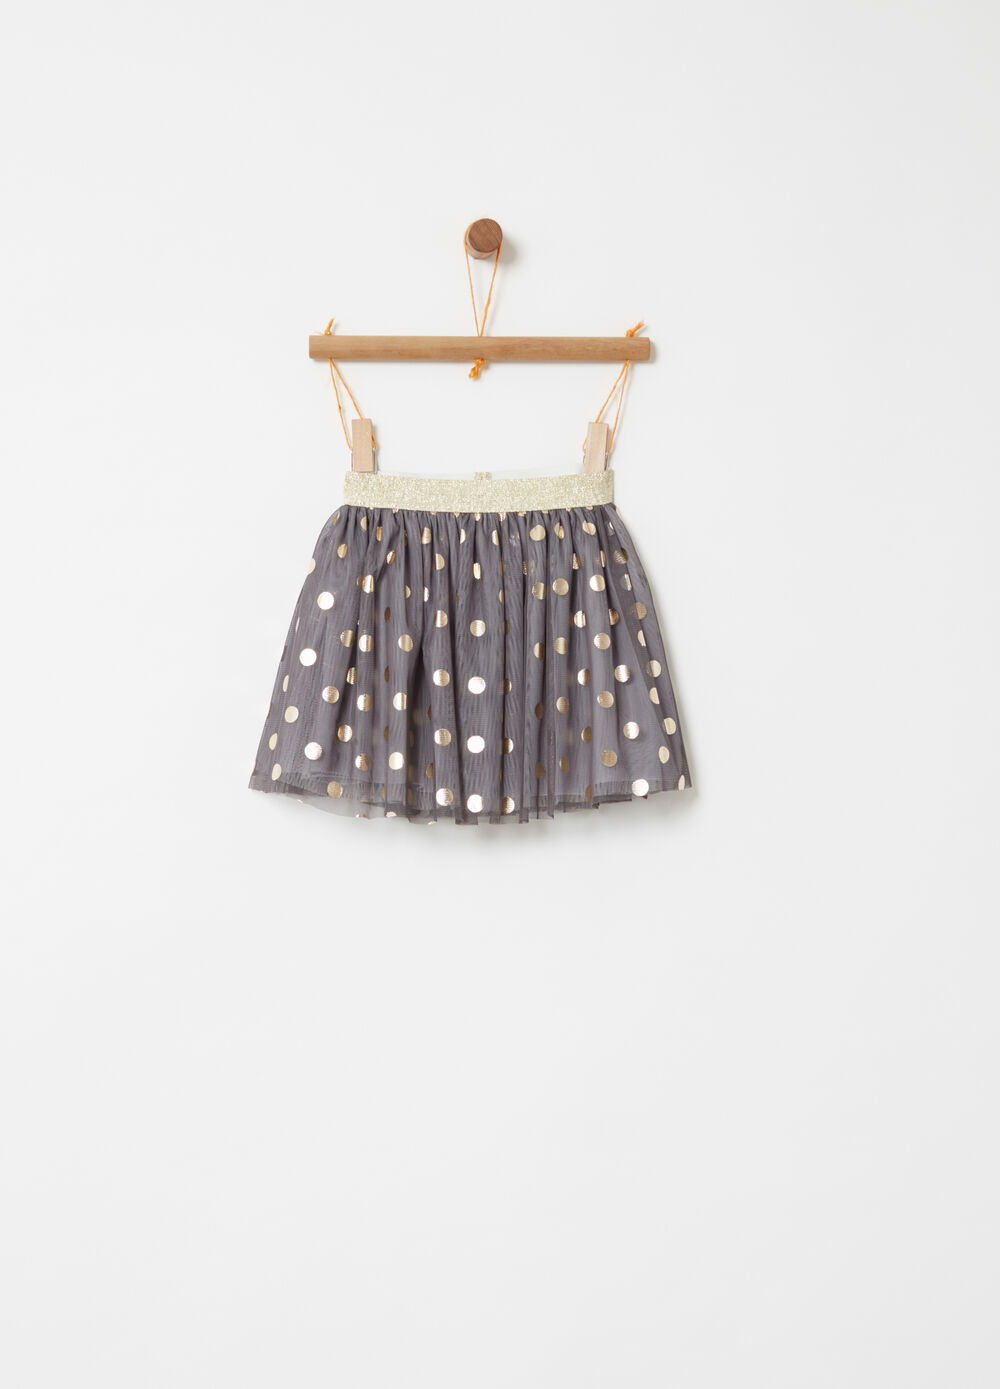 Tulle skirt with laminated gold polka dot pattern